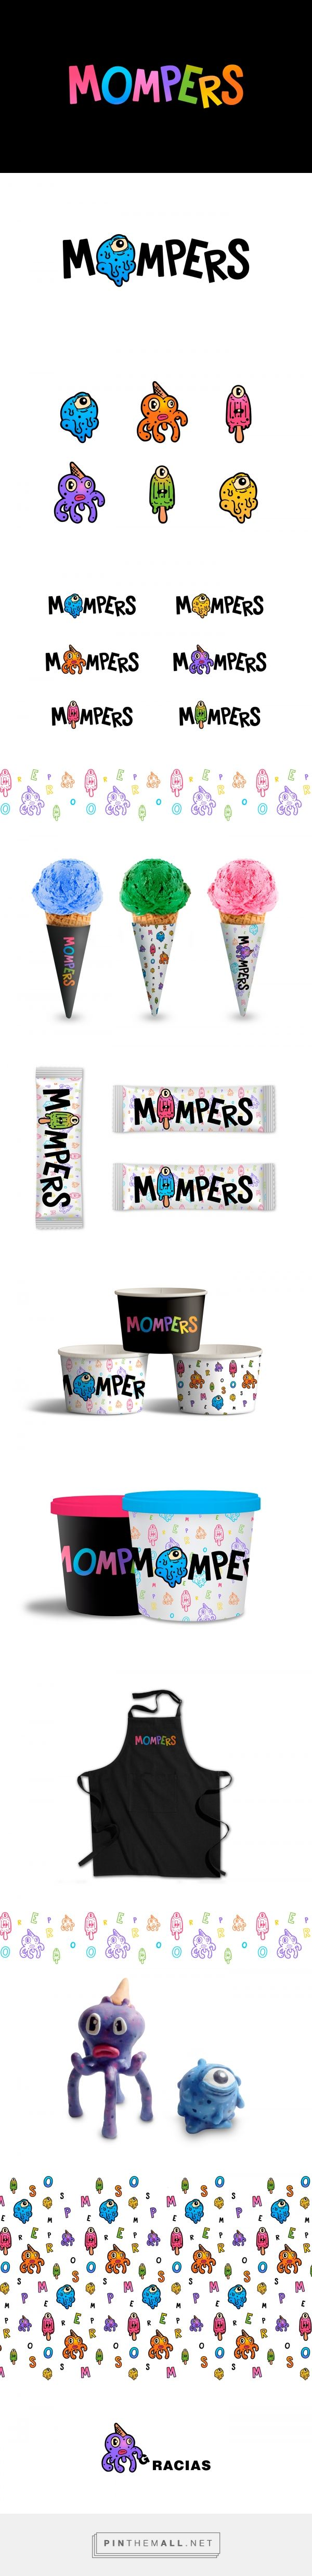 Mompers Children's Ice Cream Shop Branding and Packaging by Jose Pablo Ledesma | Fivestar Branding Agency – Design and Branding Agency & Curated Inspiration Gallery